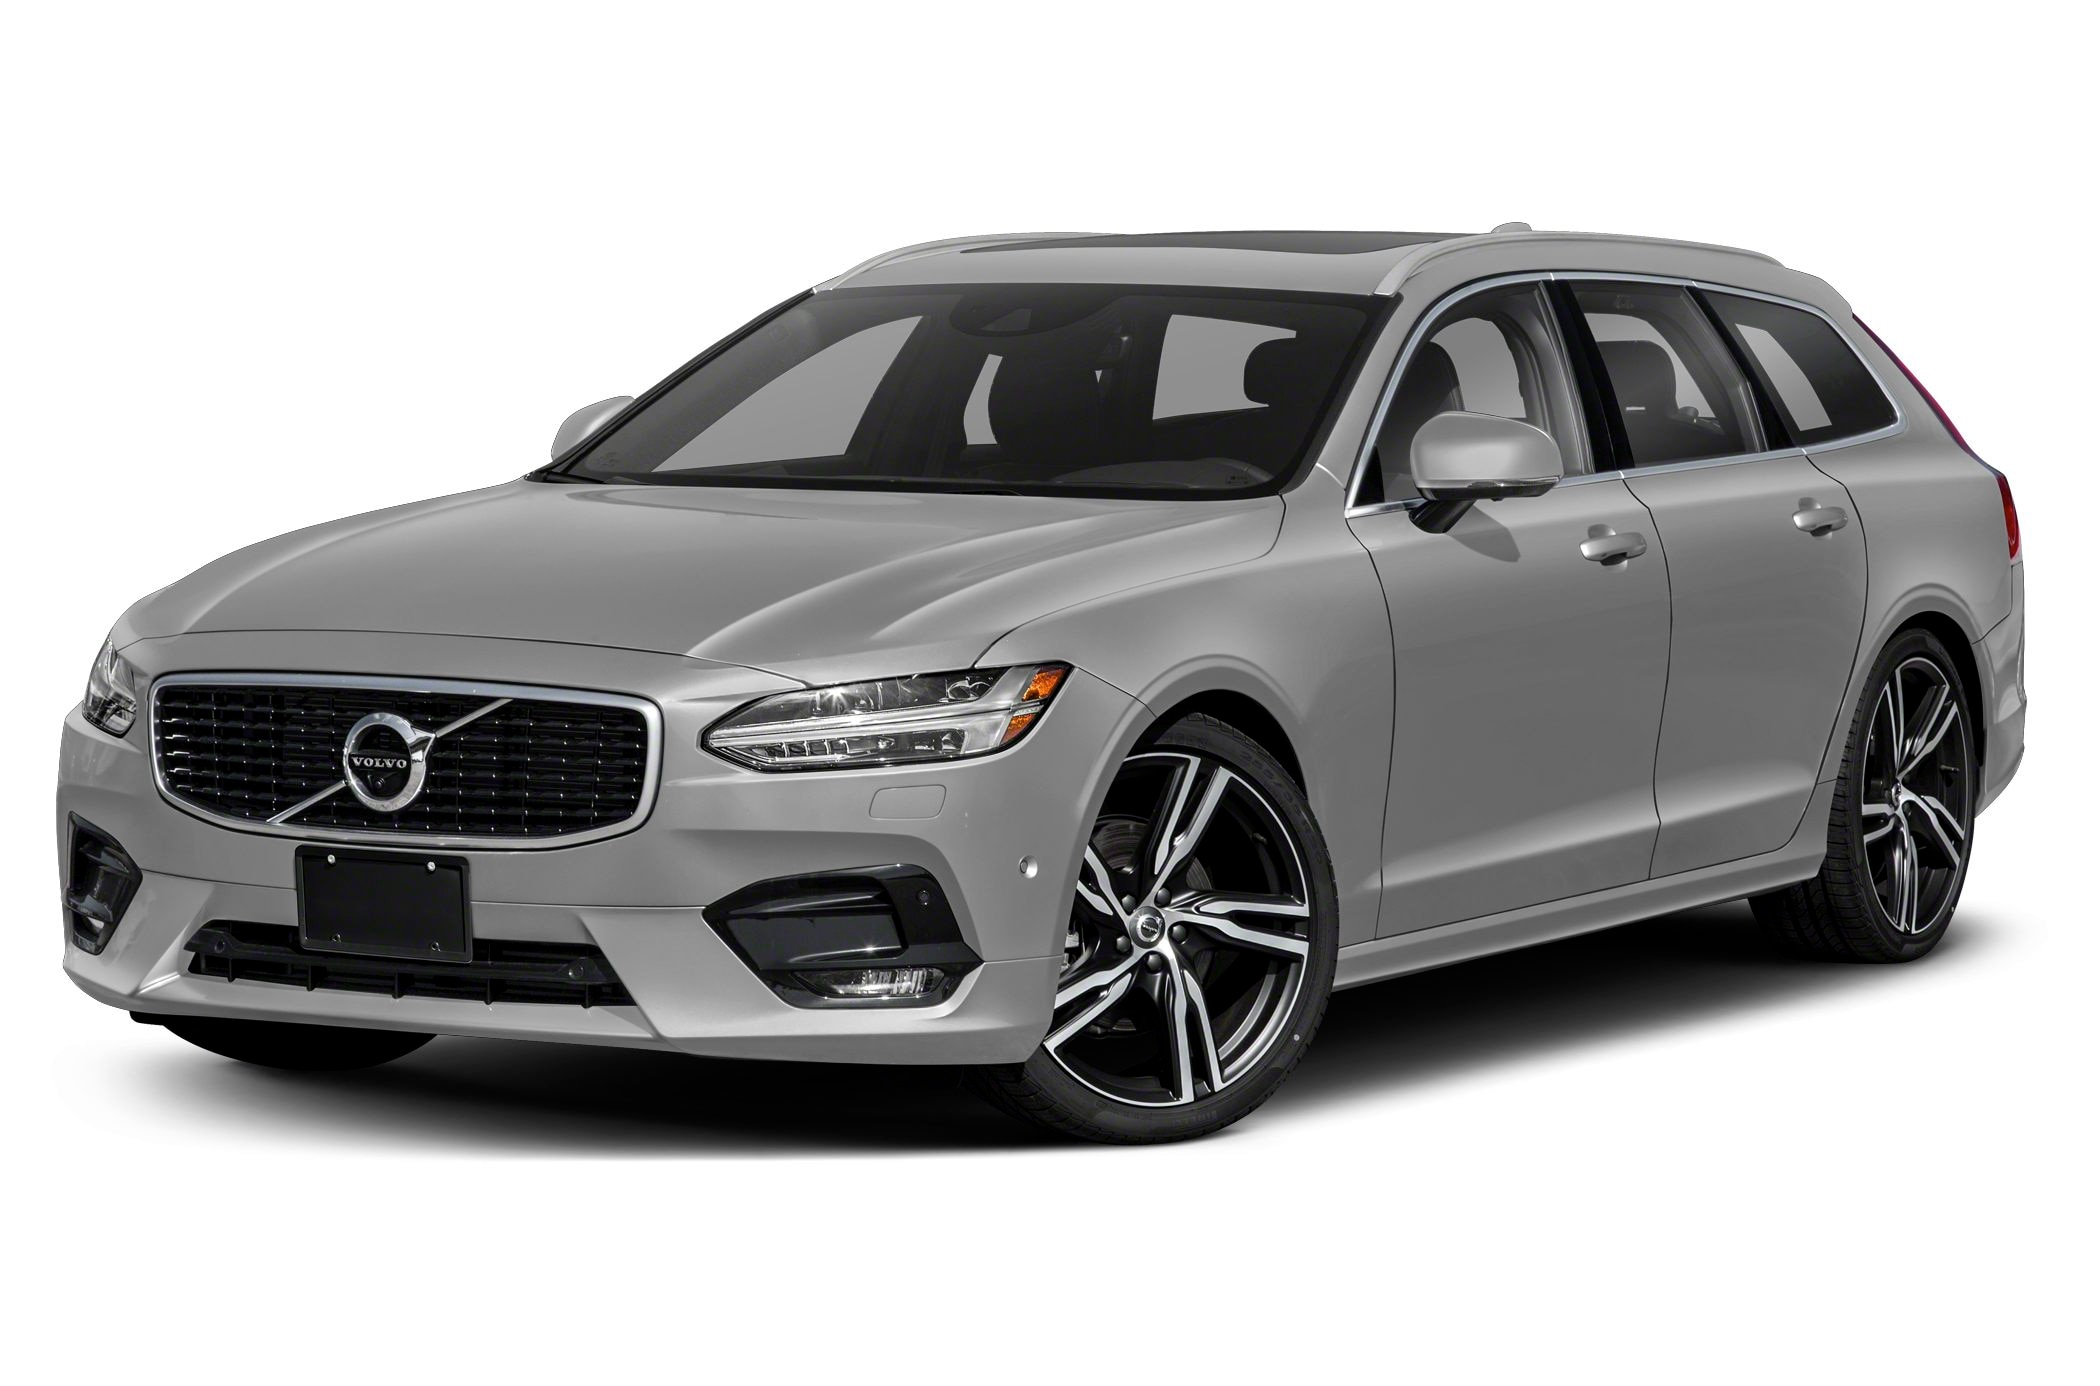 New 2020 Volvo V90 T6 R-Design Wagon for Sale in Tampa, FL